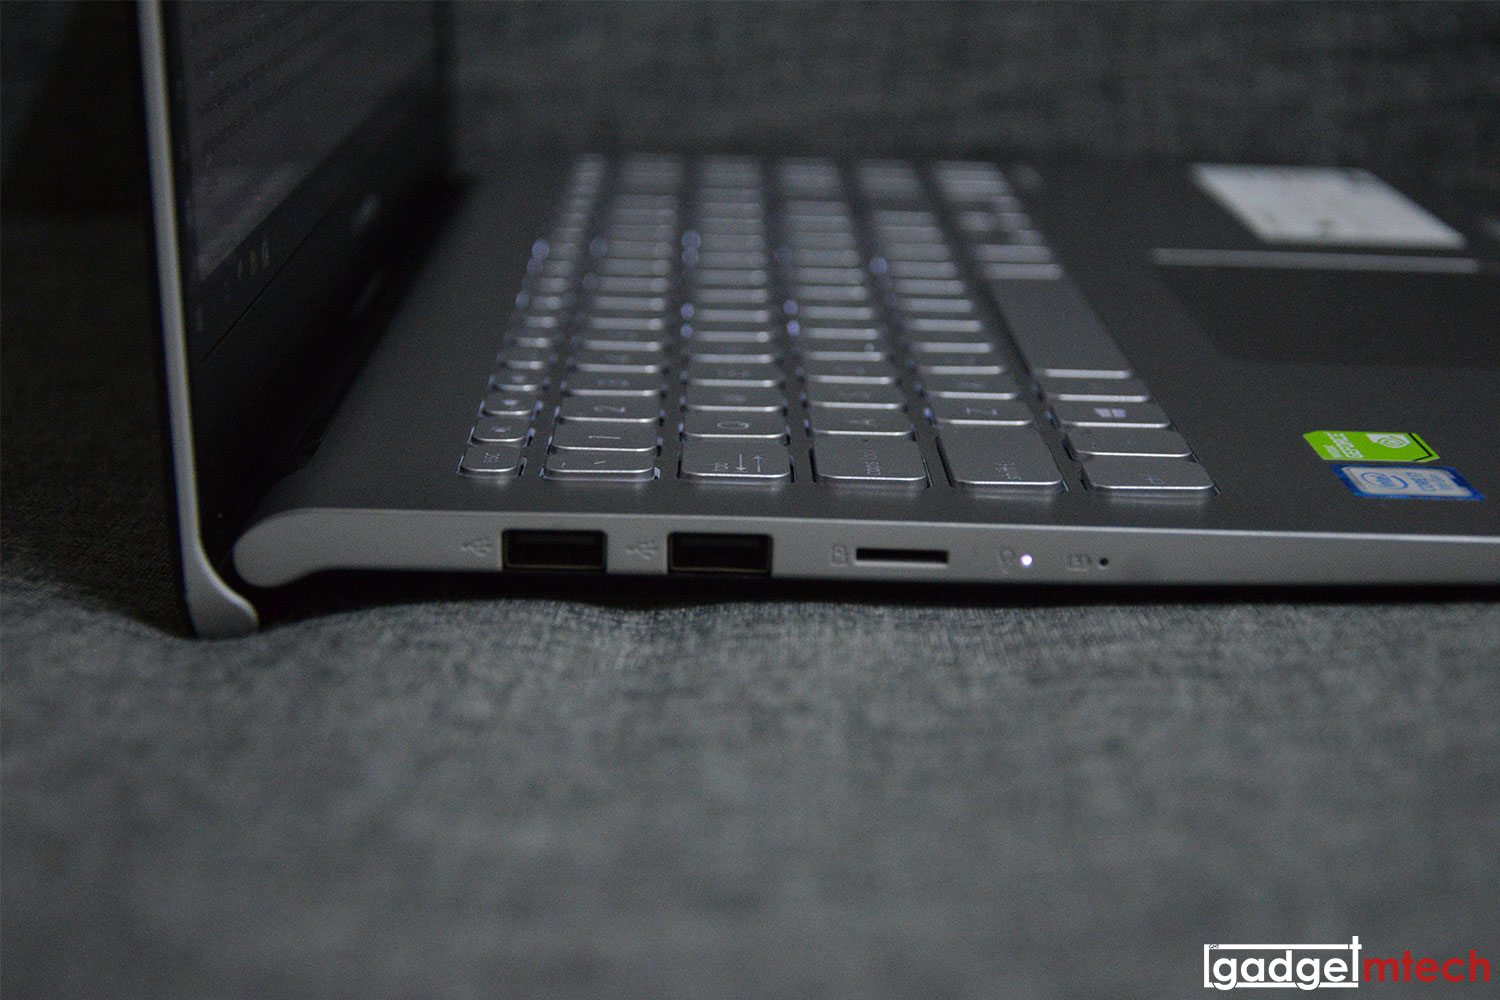 ASUS VivoBook S15 (S530) Review: Affordable with Style